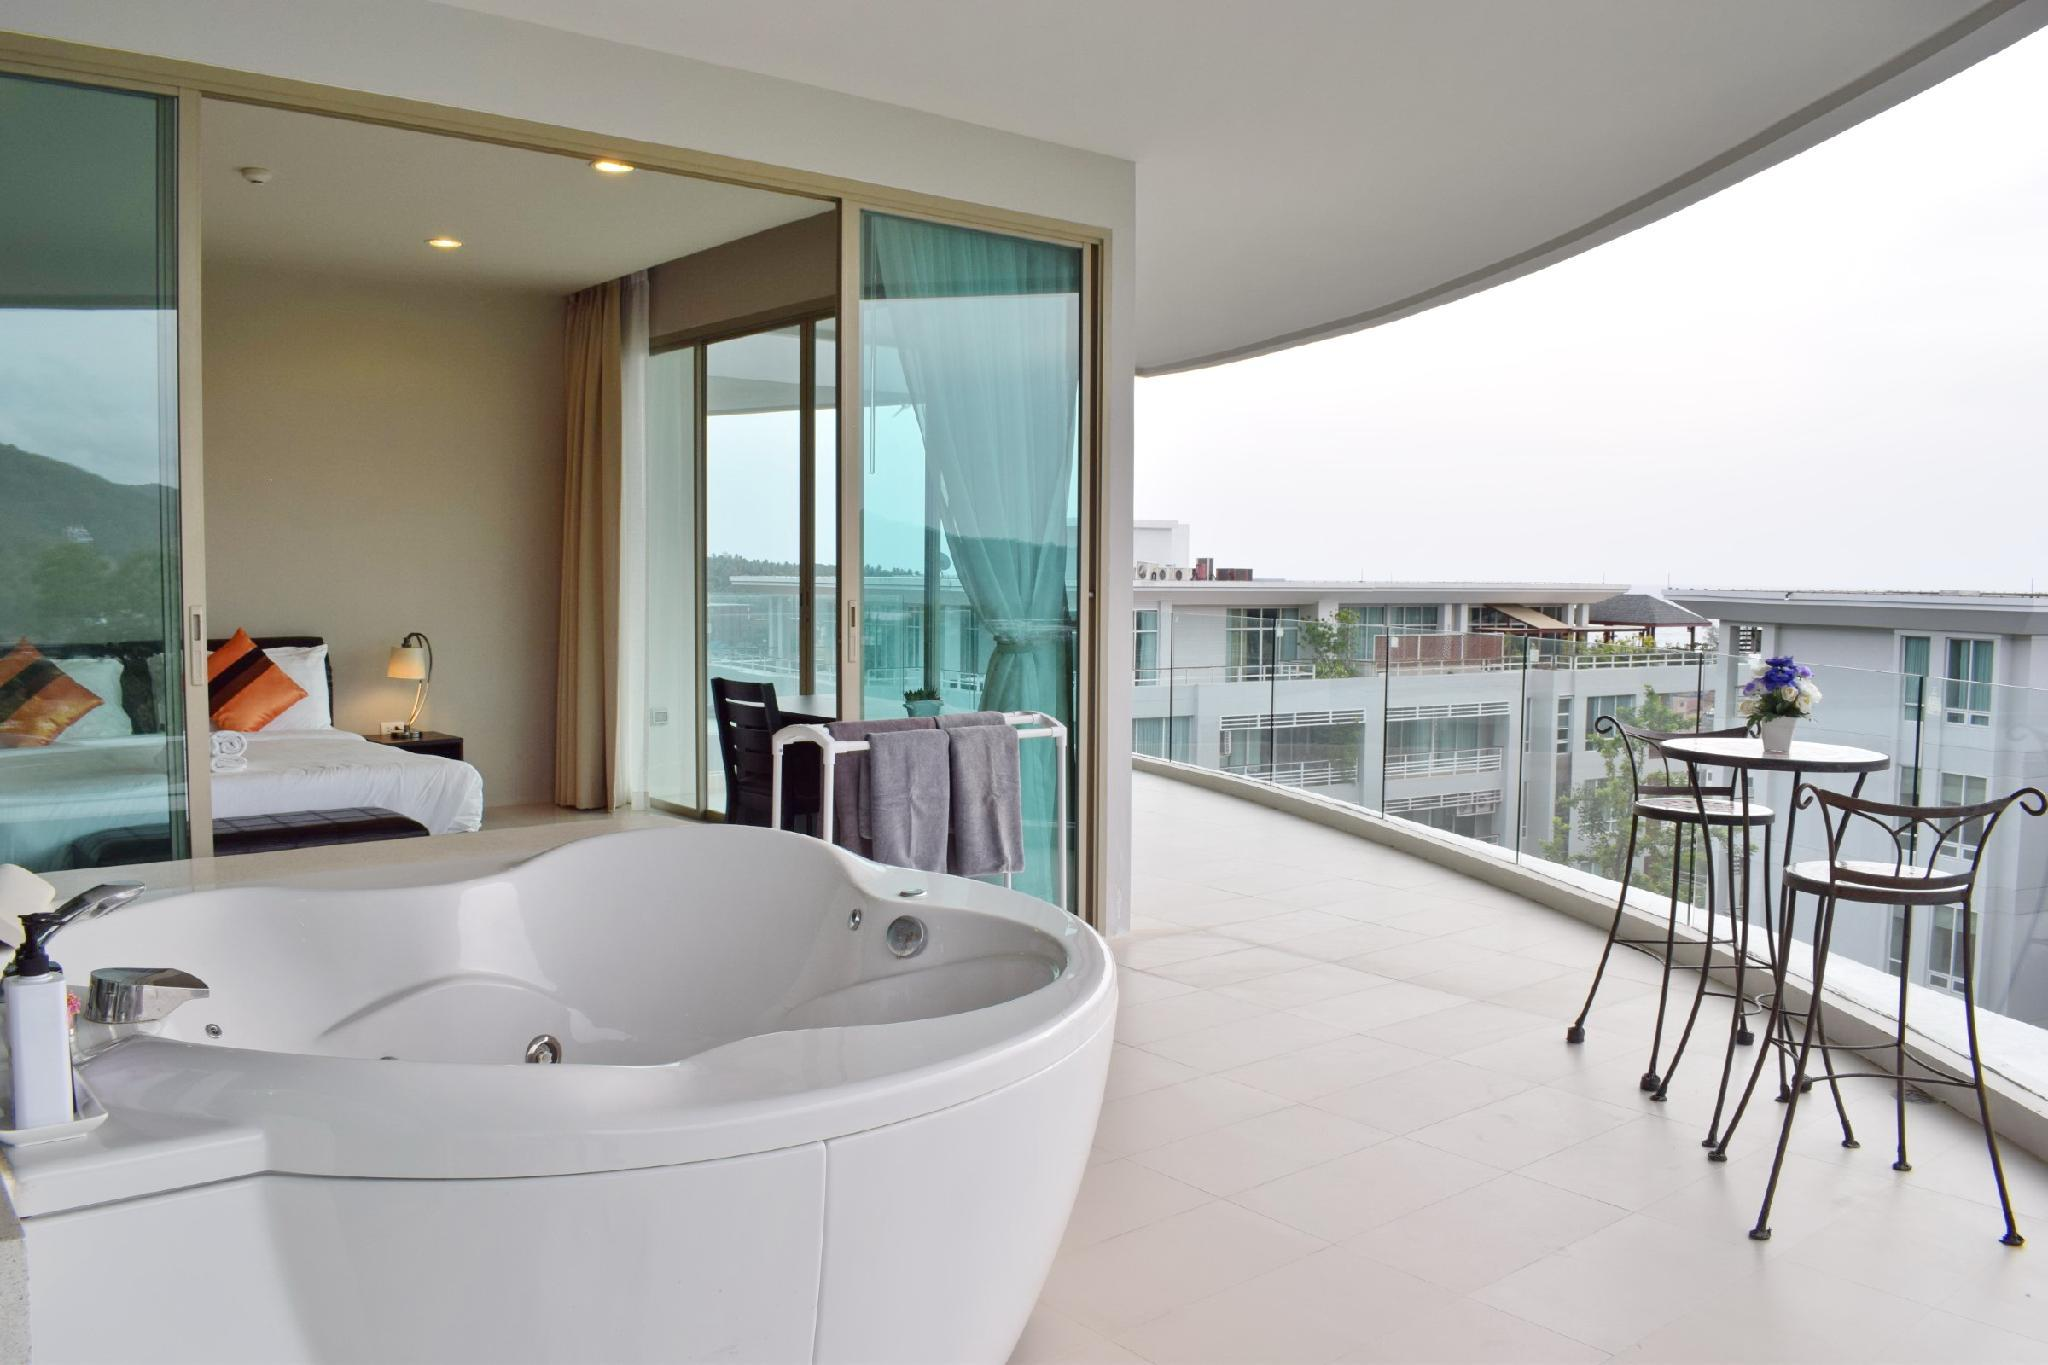 2 Beds Seaview With Jacuzzi On Balcony